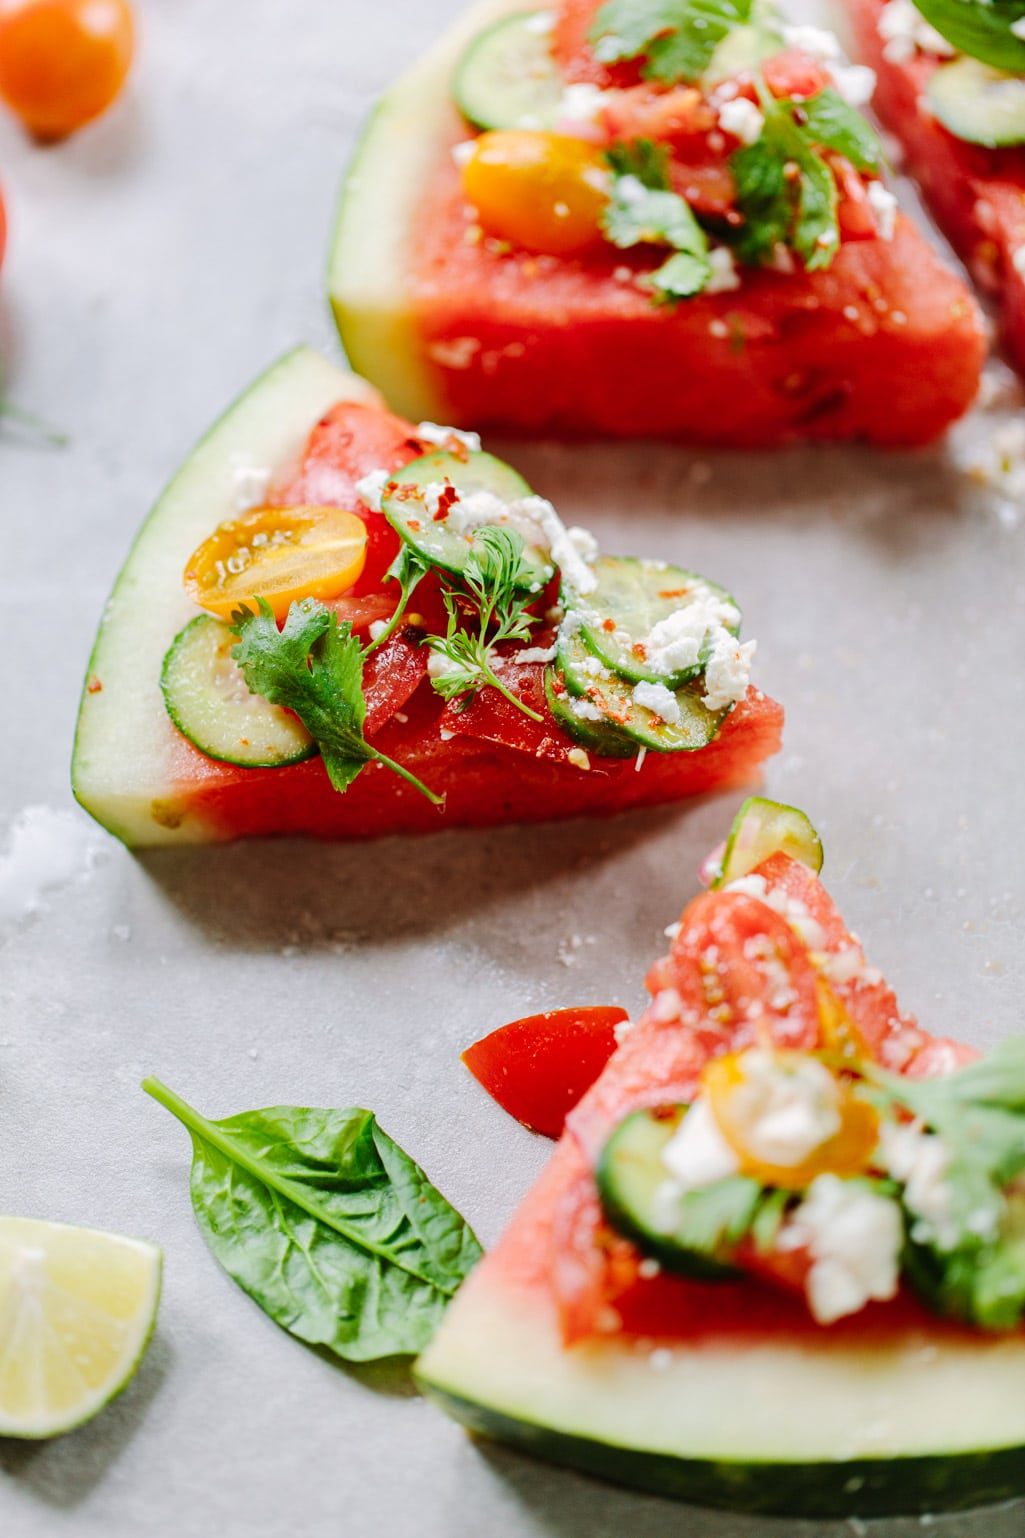 Watermelon wedges topped with a Mediterranean salad of cucumber, feta and tomatoes.